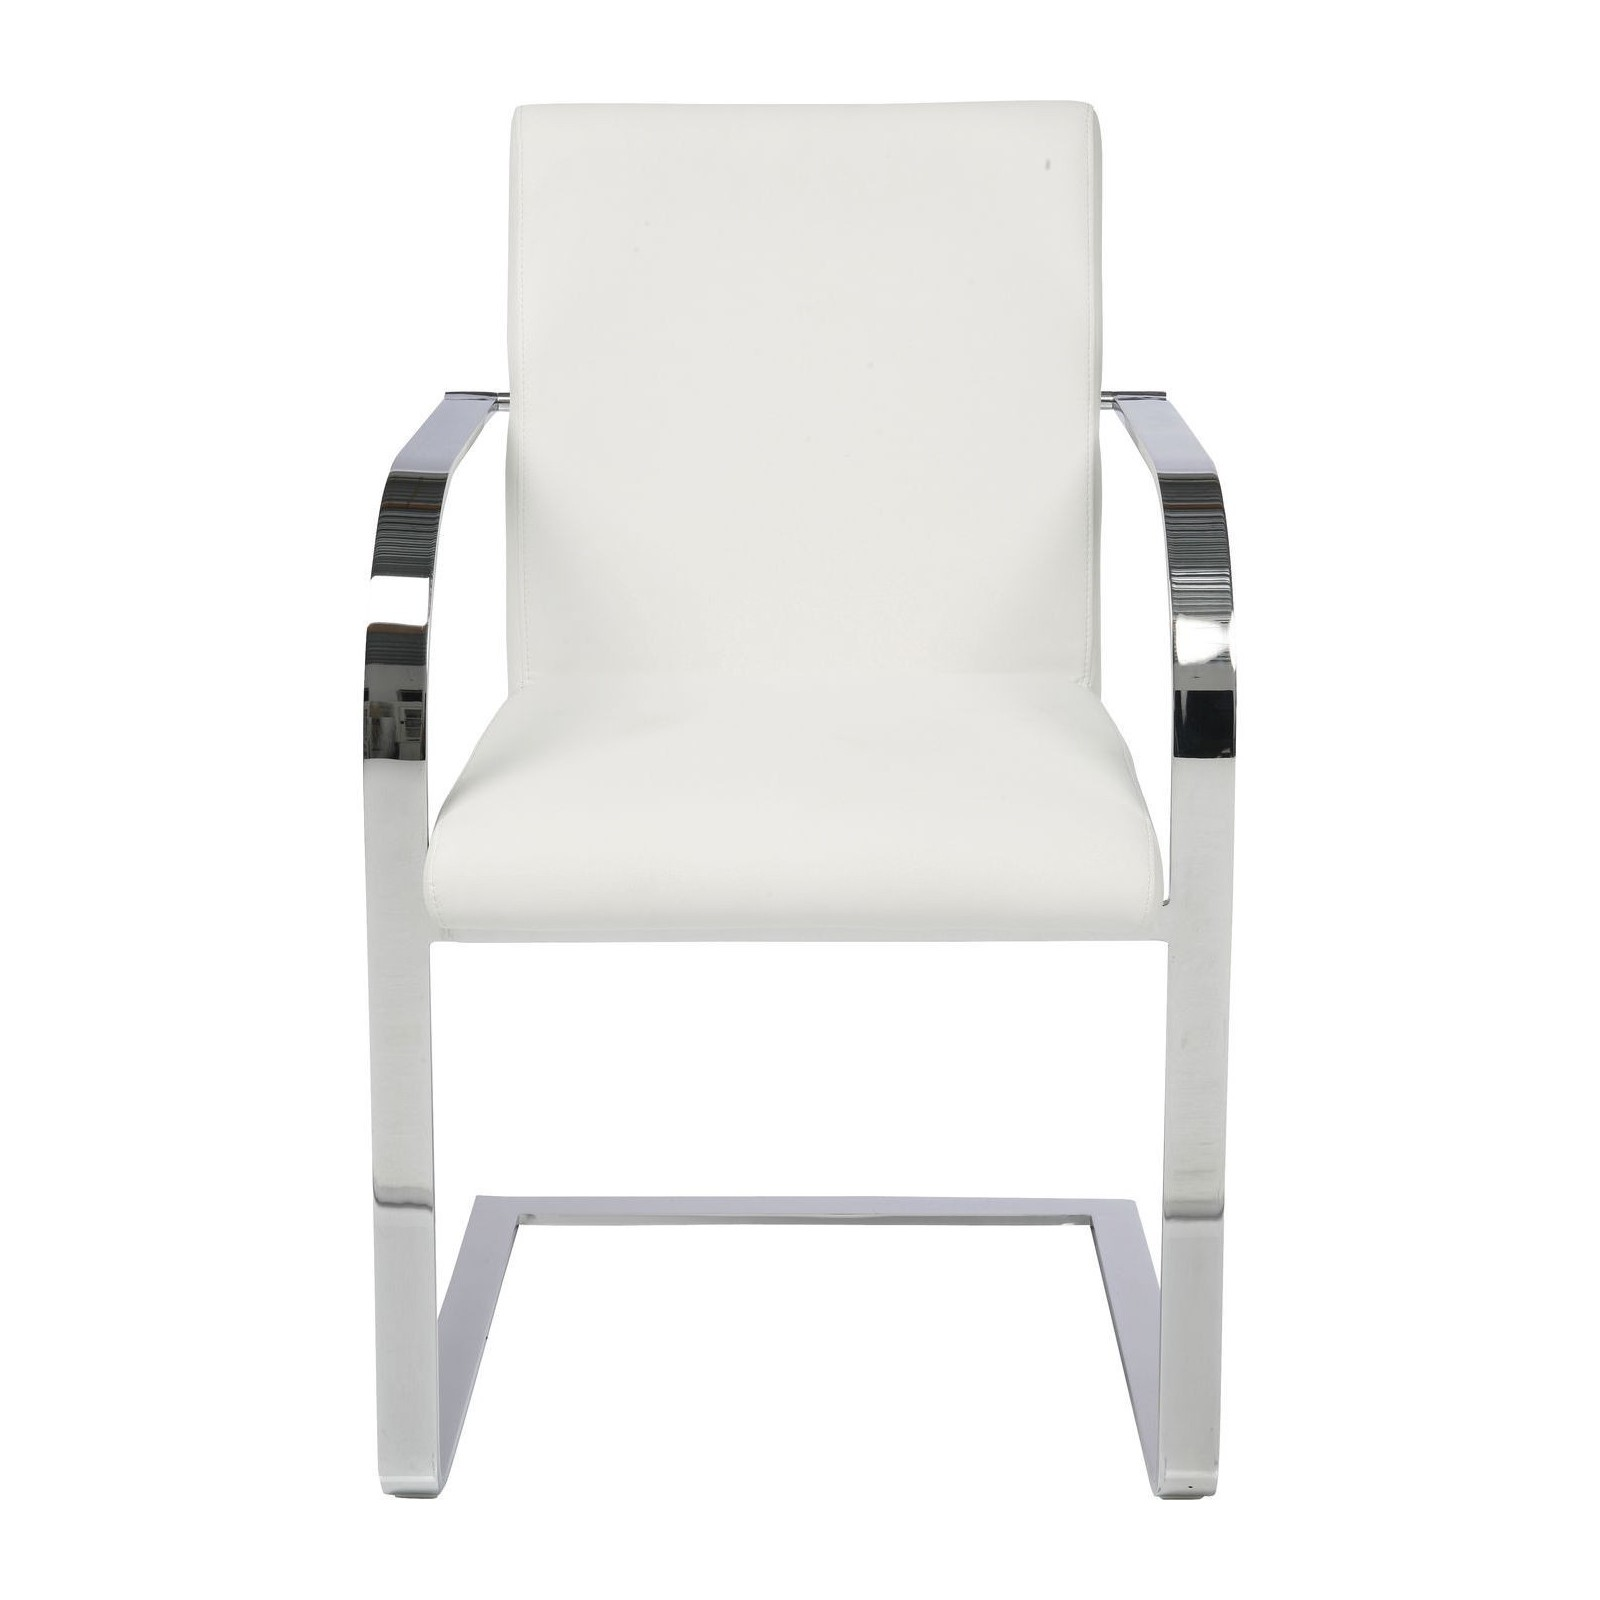 Chaises Blanches Modernes Chaise Avec Accoudoirs Moderne Blanche Canto Kare Design